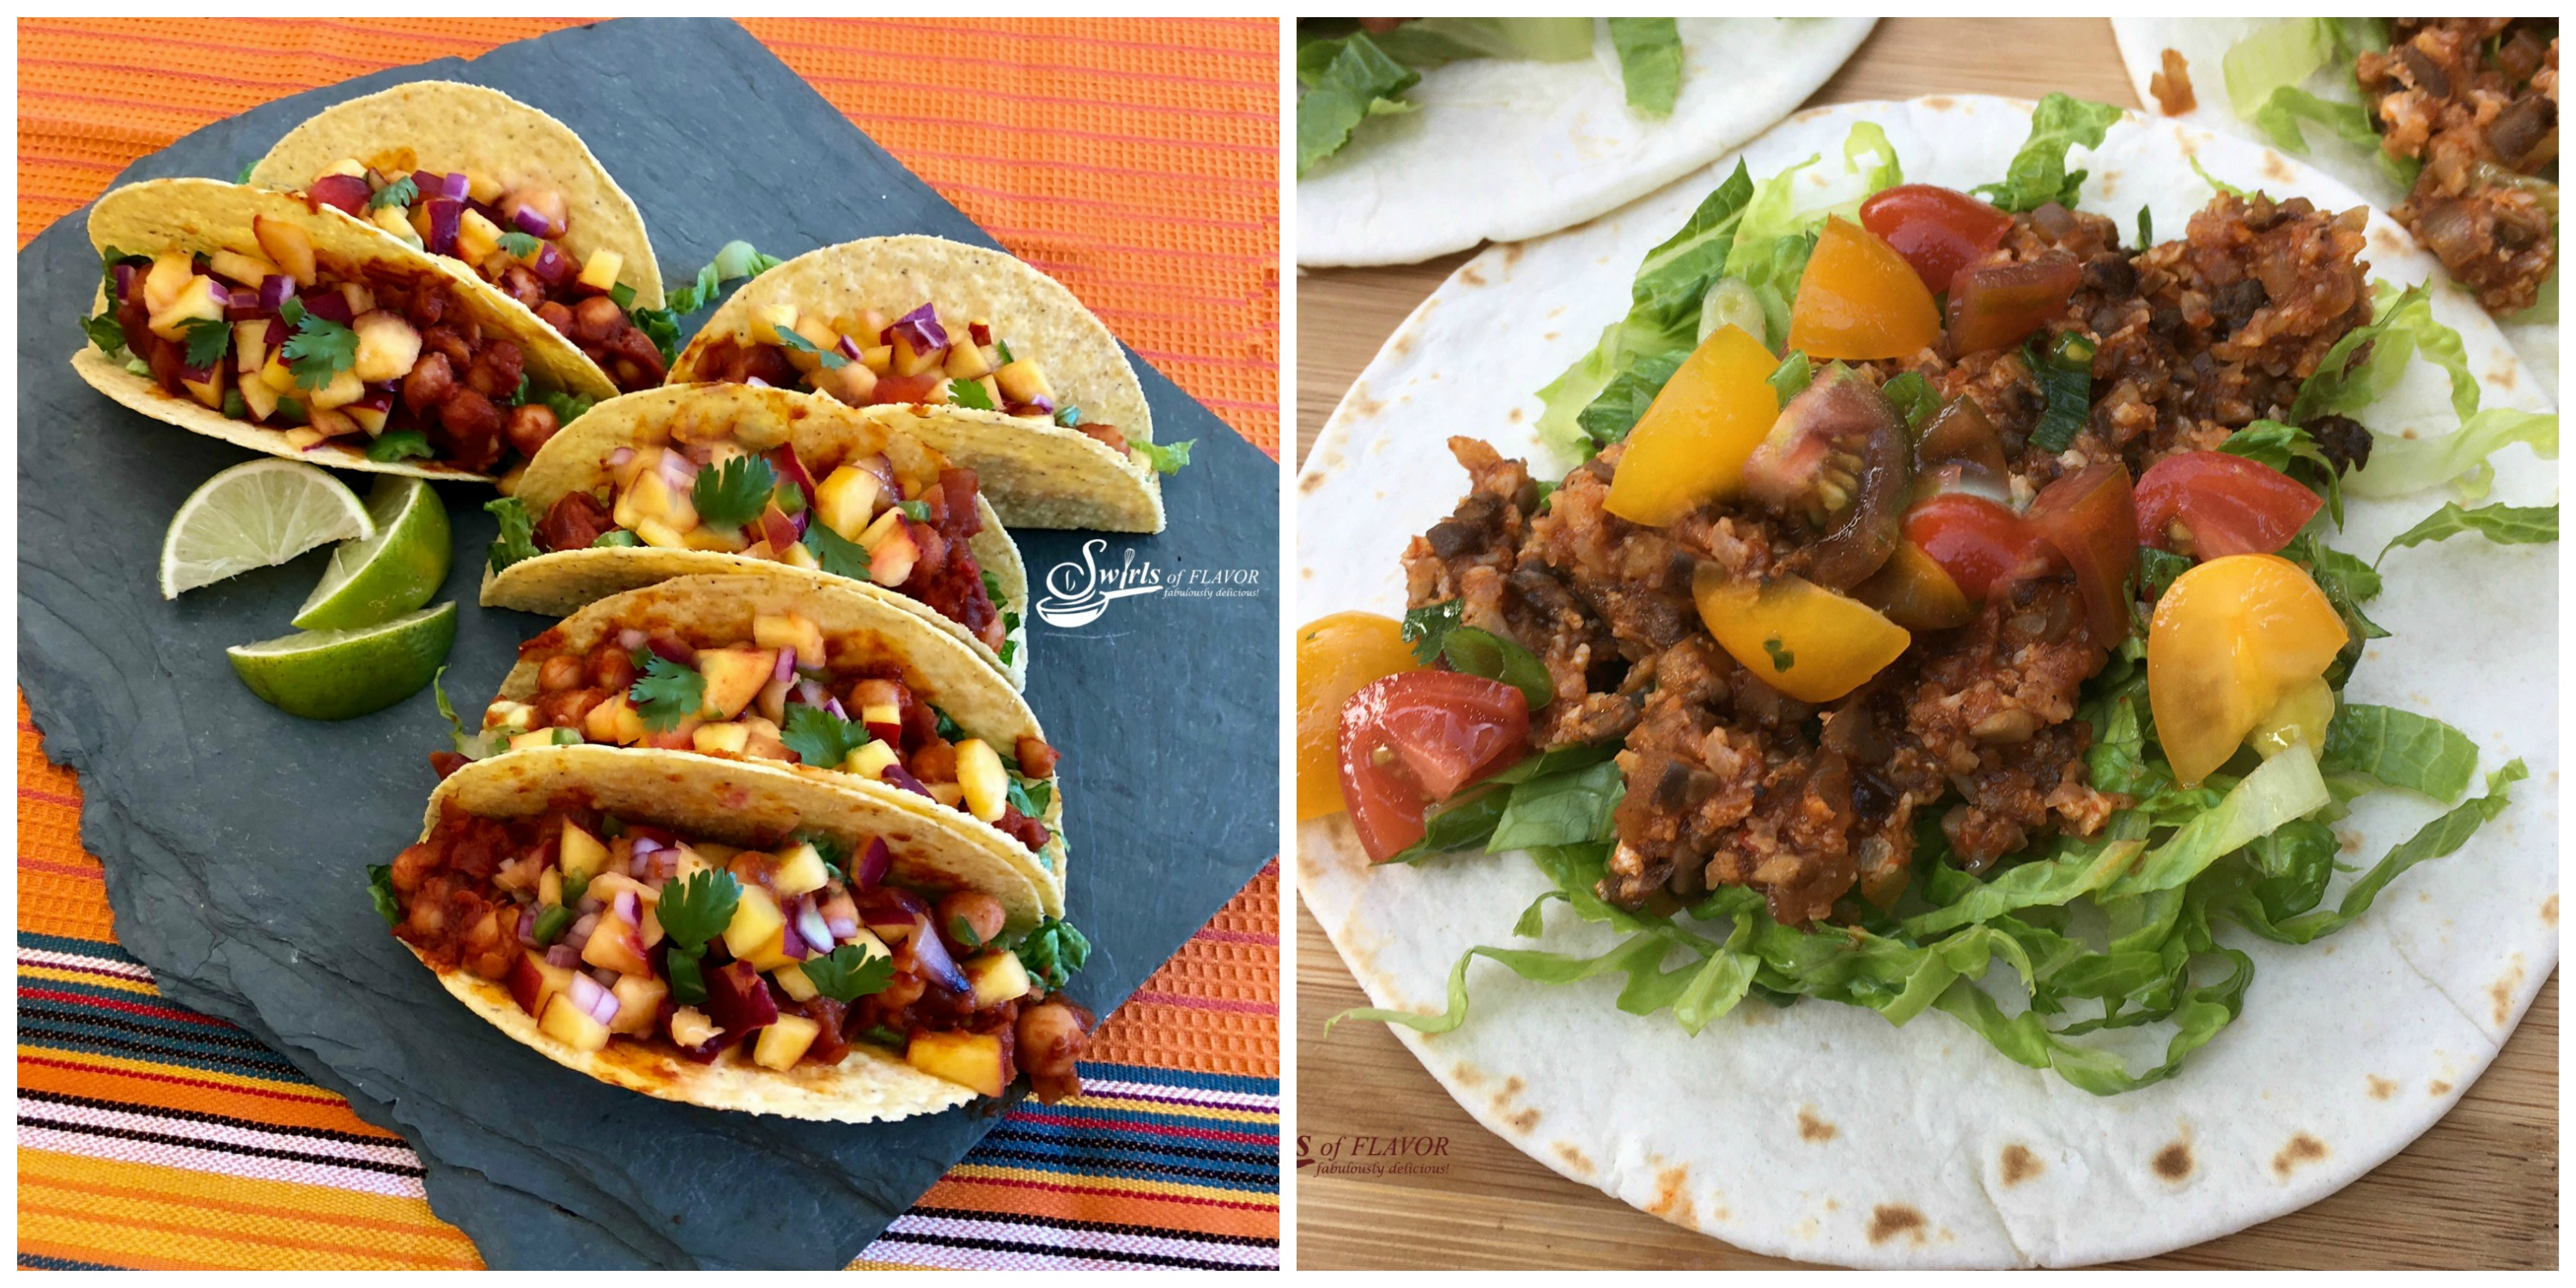 Vegan Tacos and Cauliflower Tacos